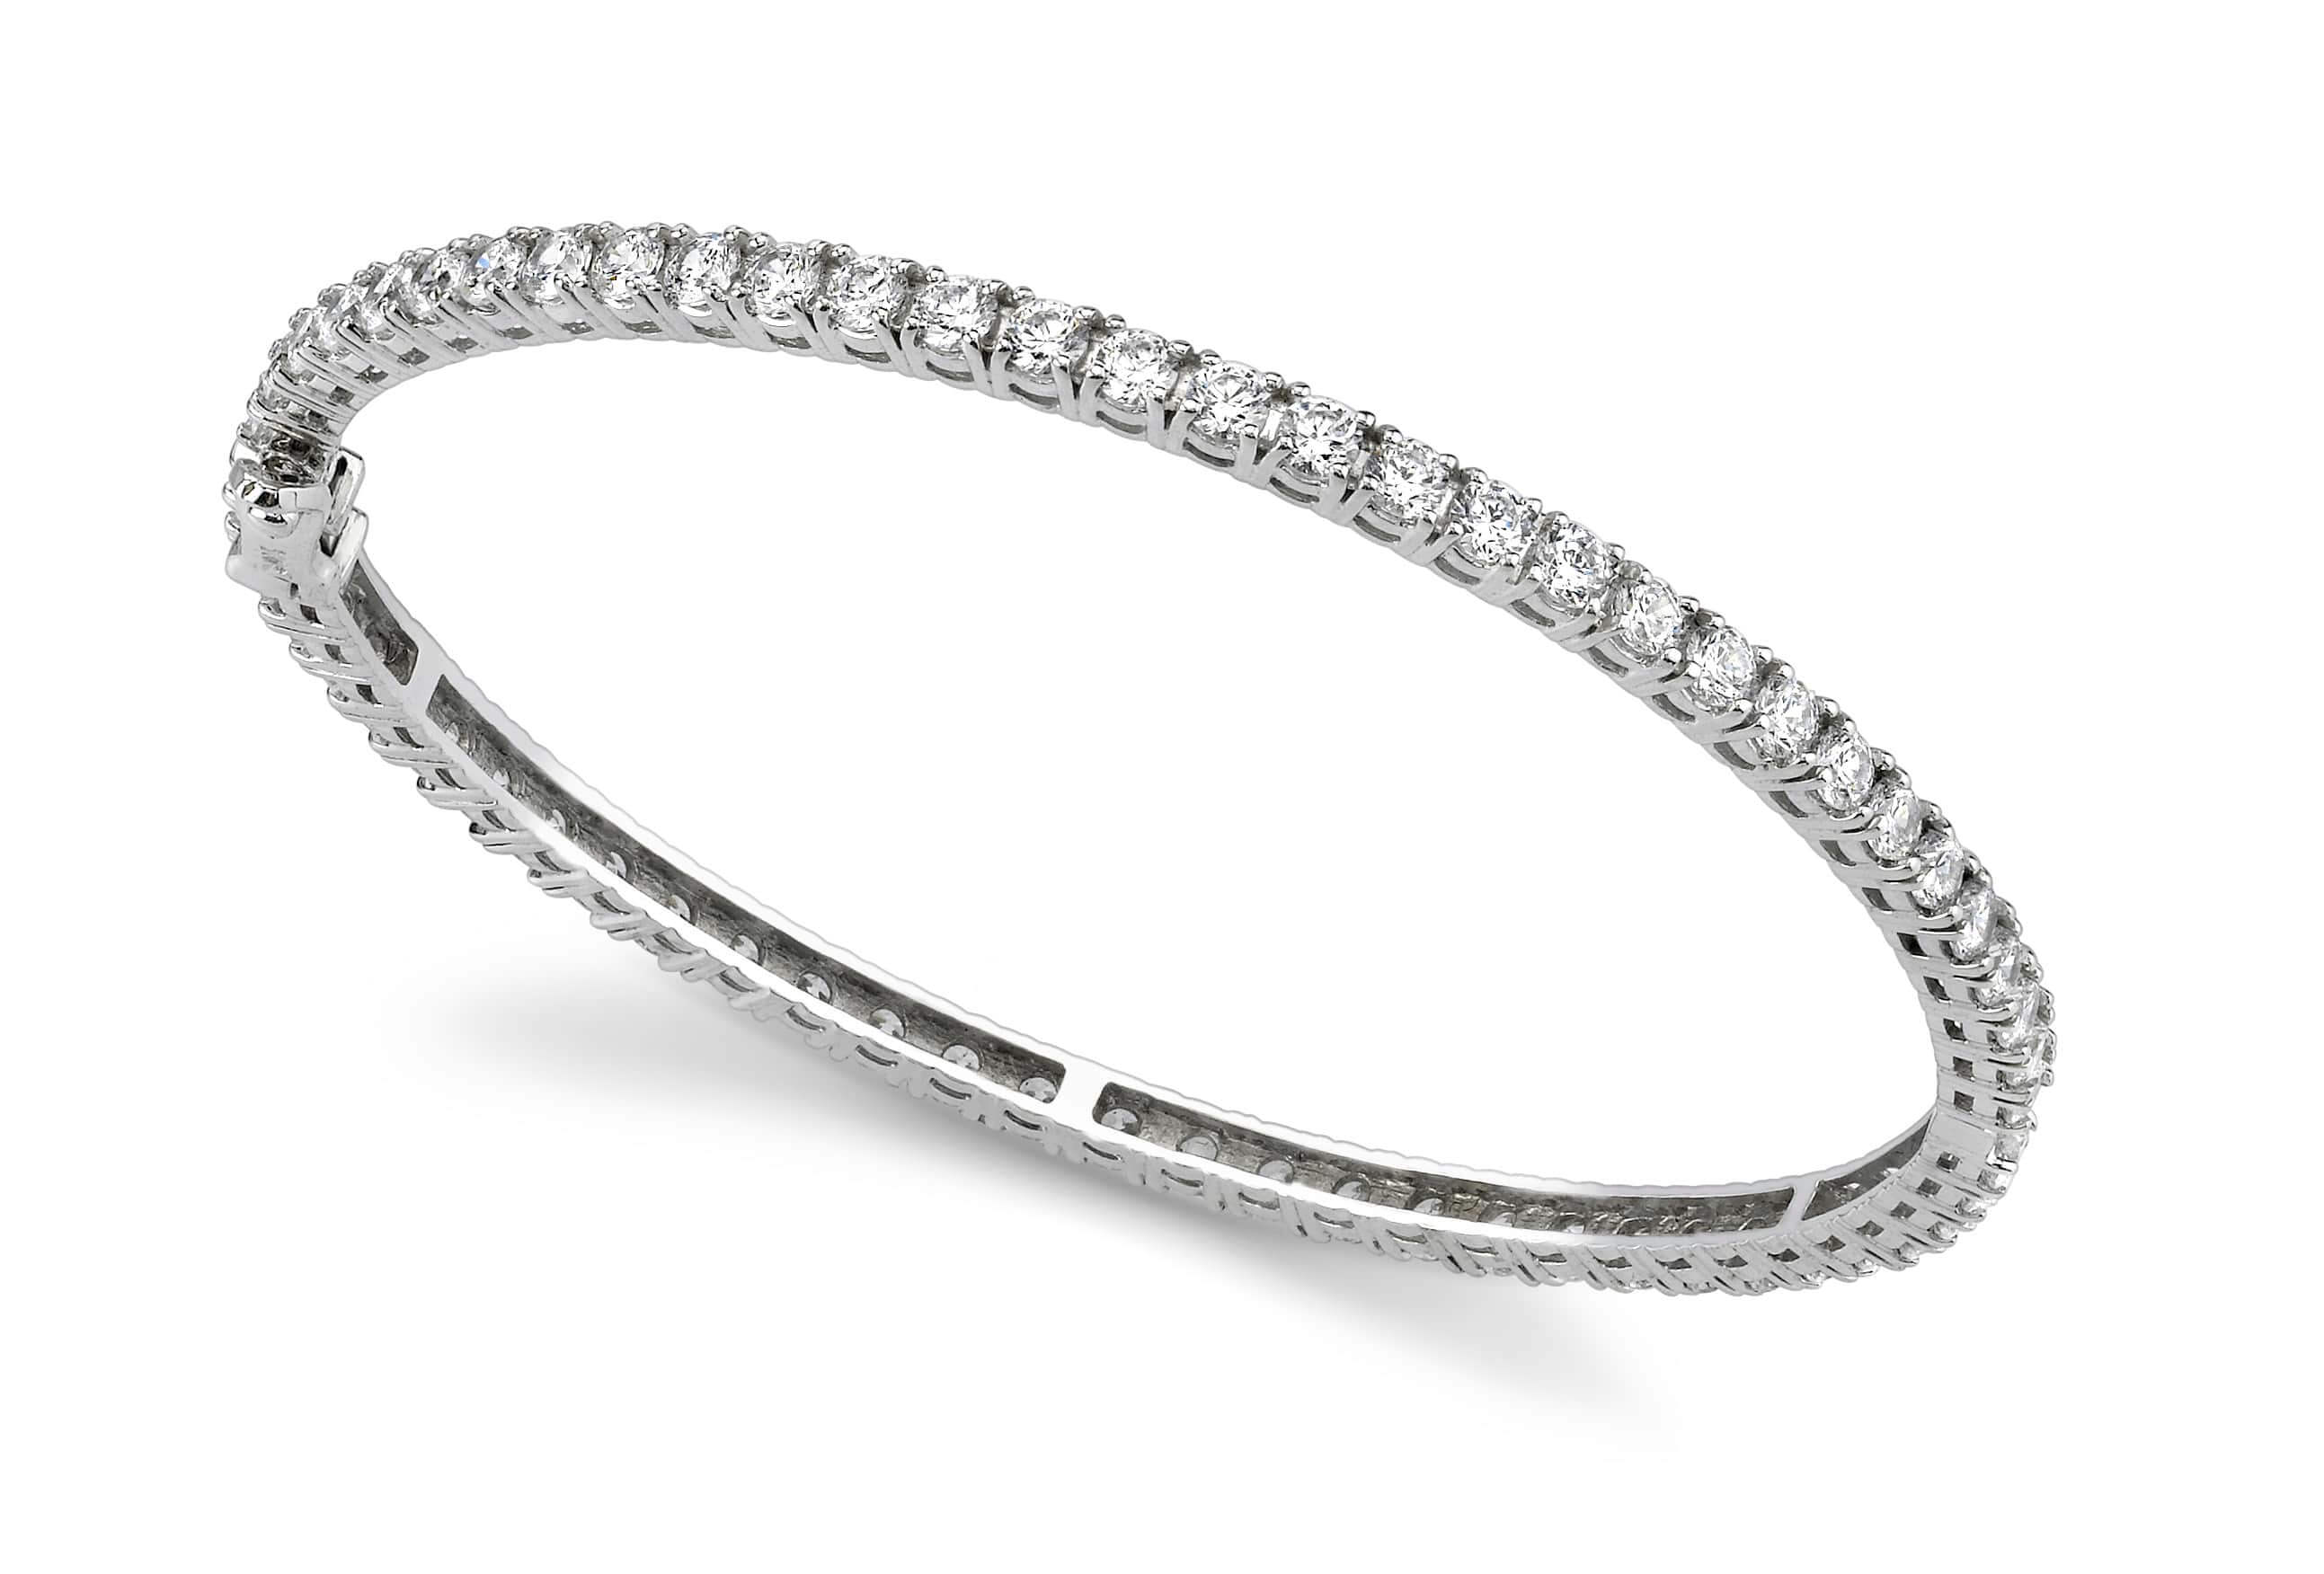 pave tcw classica bangle bracelet diamond zoom bangles